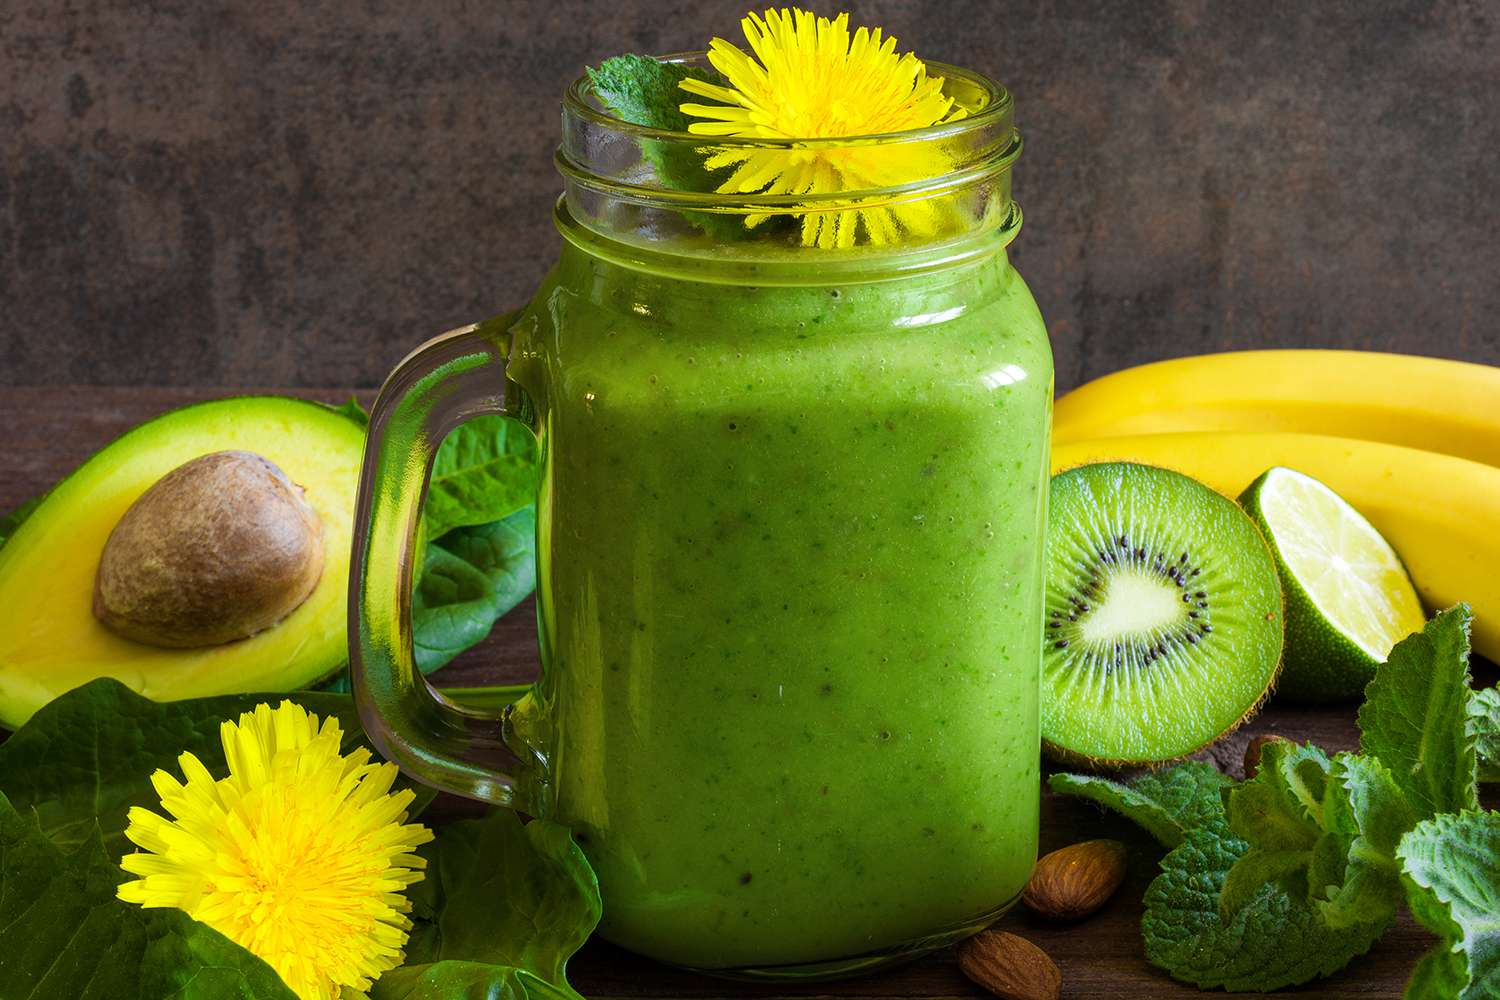 Green healthy smoothie in glass jar with avocado, banana, kiwi, spinach, mint, almonds and dandelion on rustic wooden background